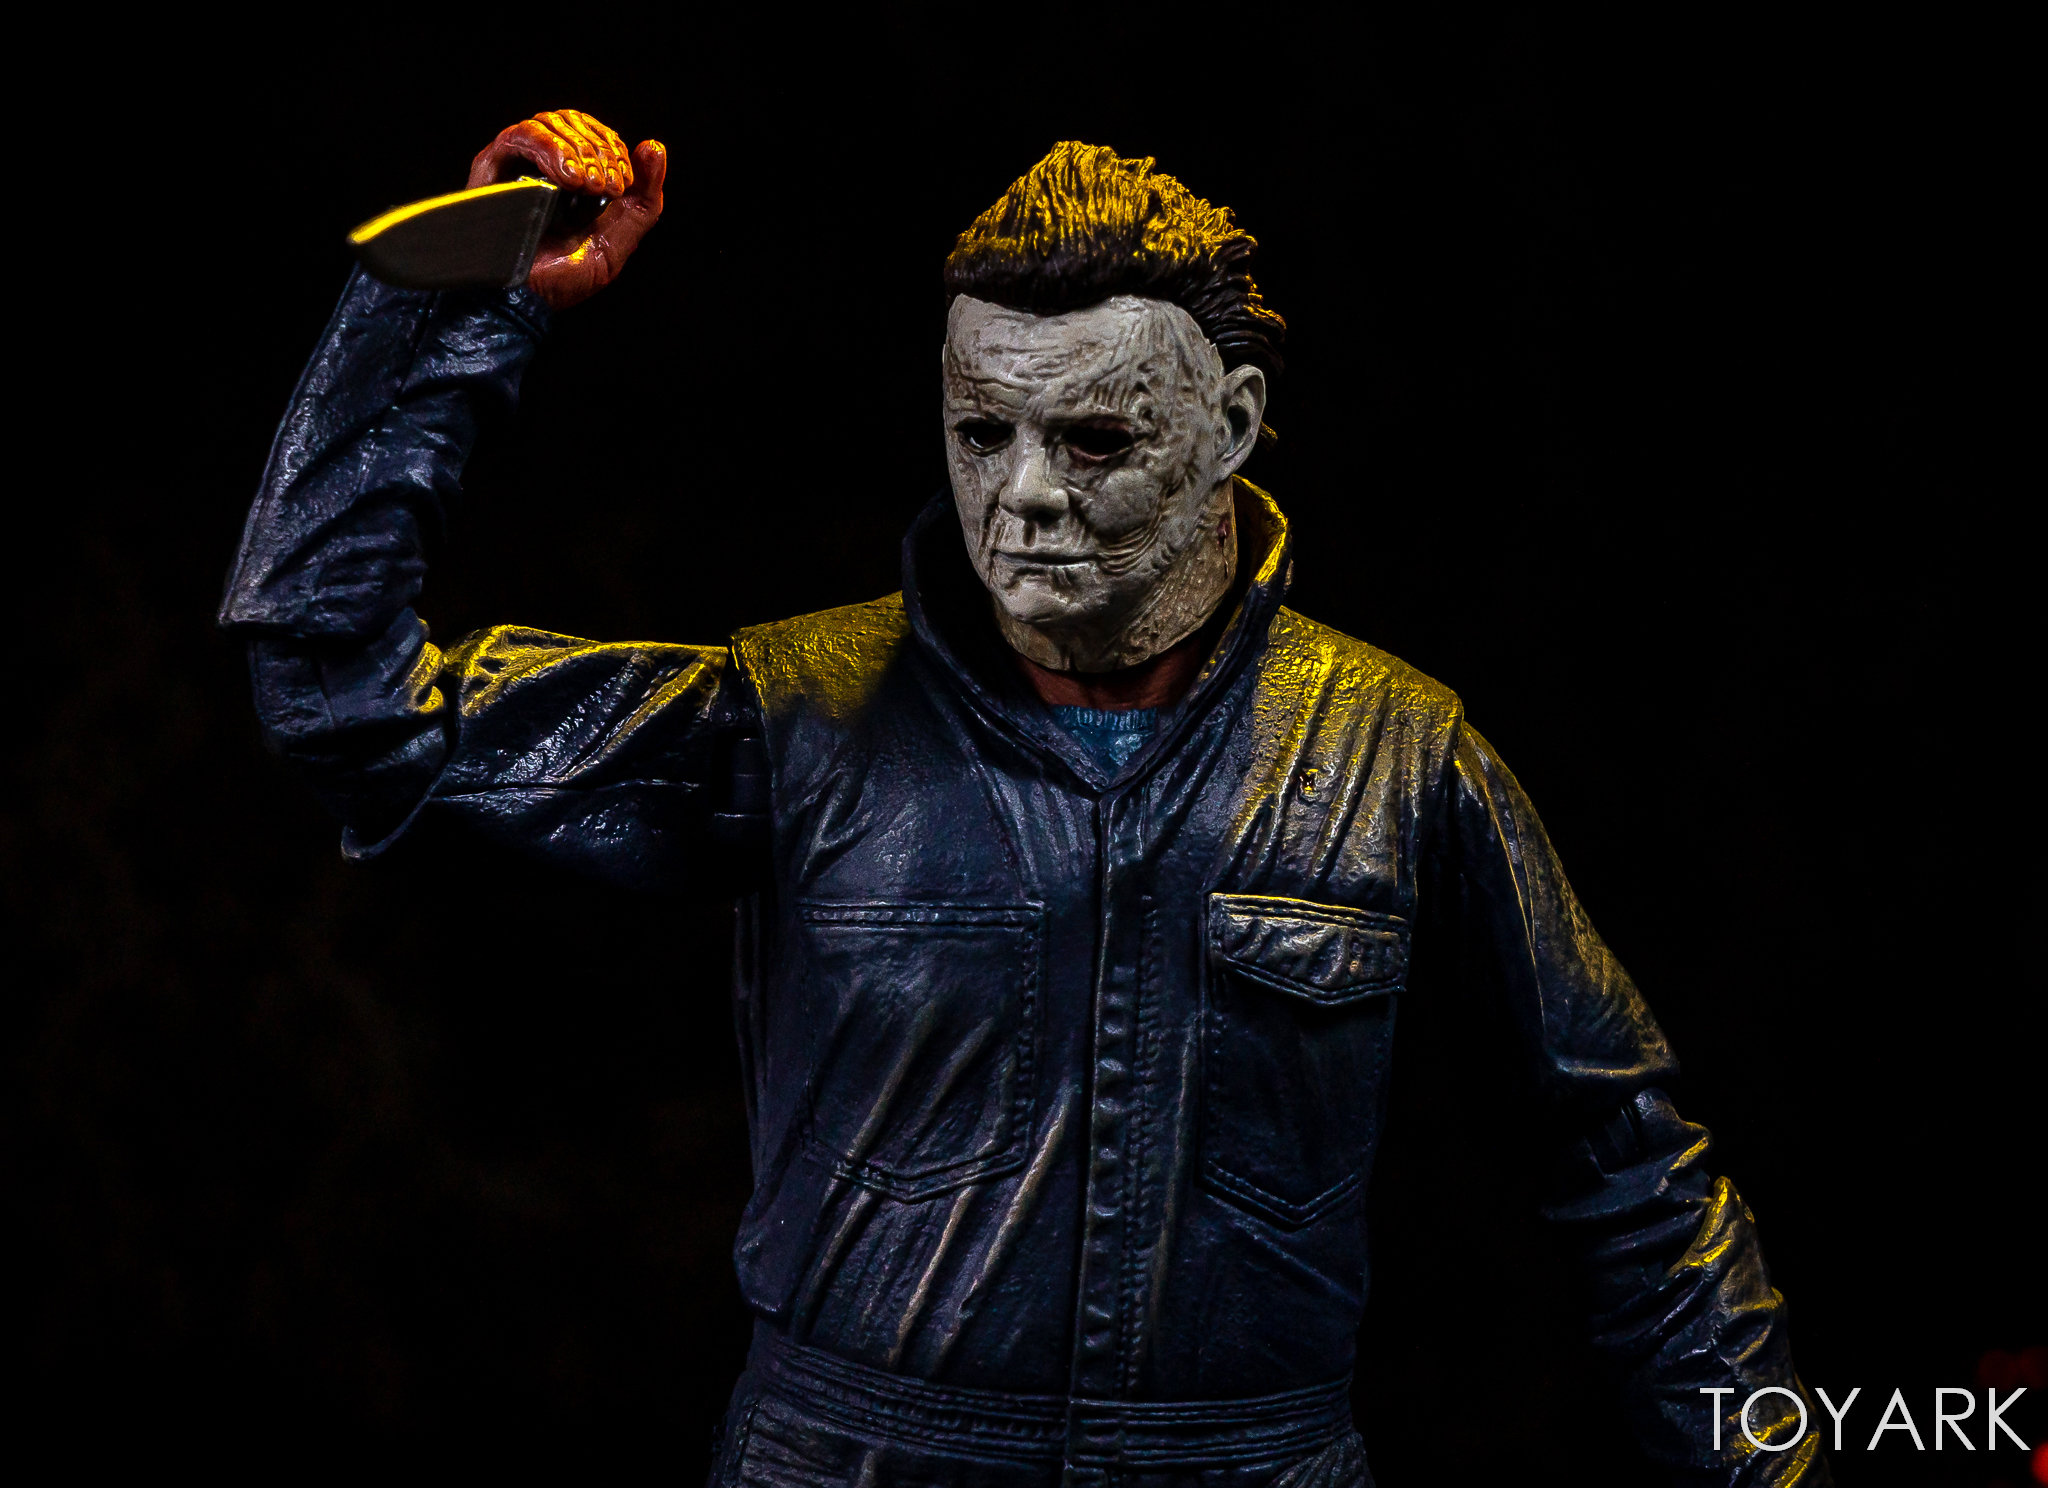 https://news.toyark.com/wp-content/uploads/sites/4/2018/11/Halloween-2018-Michael-Myers-Figure-058.jpg